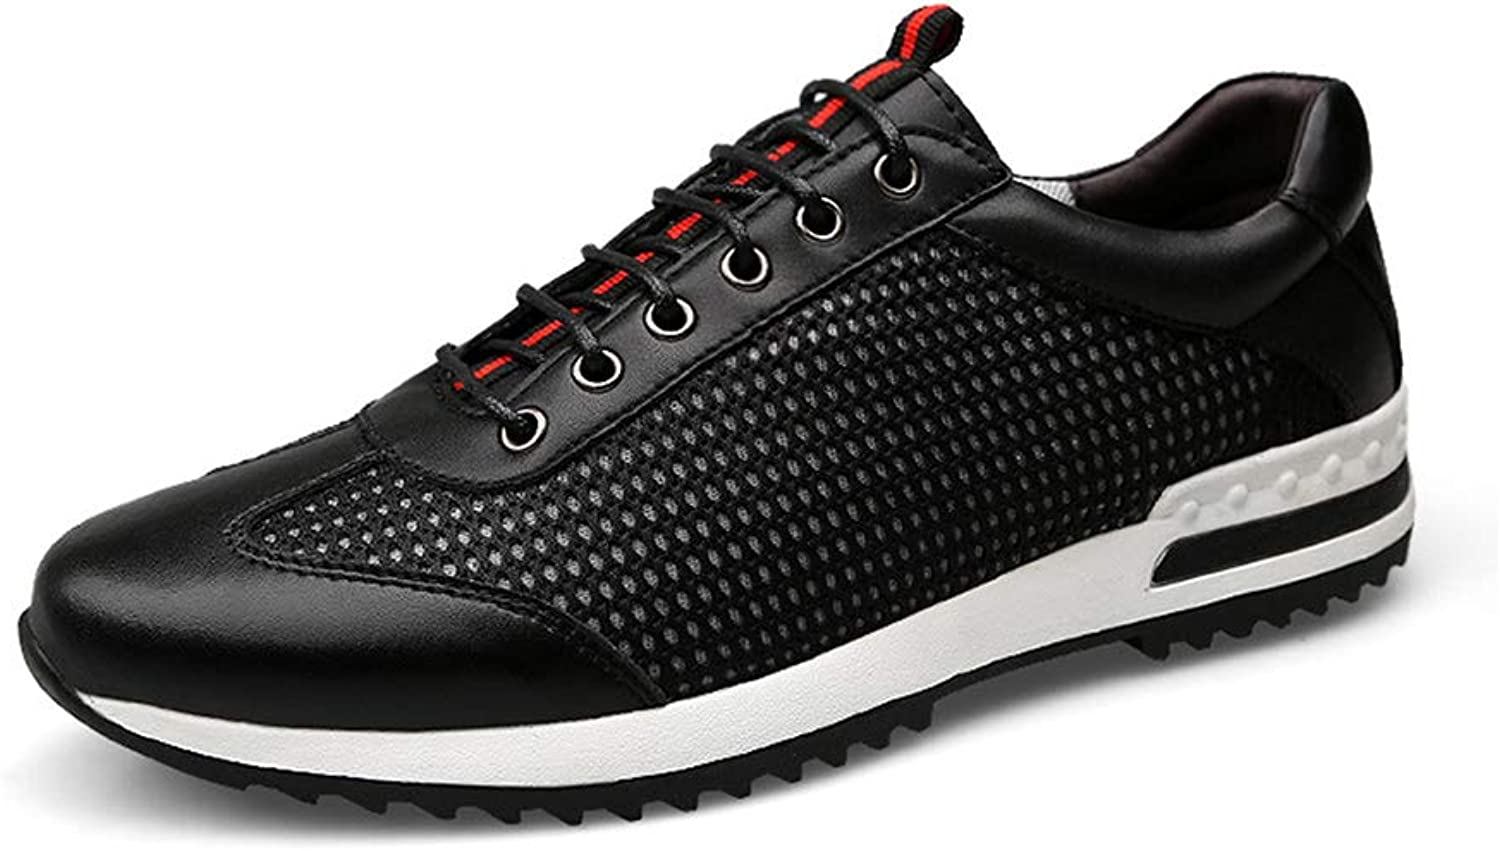 Men's Casual shoes Non-slip Front tie Running shoes Cozy Breathable Mesh shoes Multifunction Wear resistant Sports shoes,Black,37